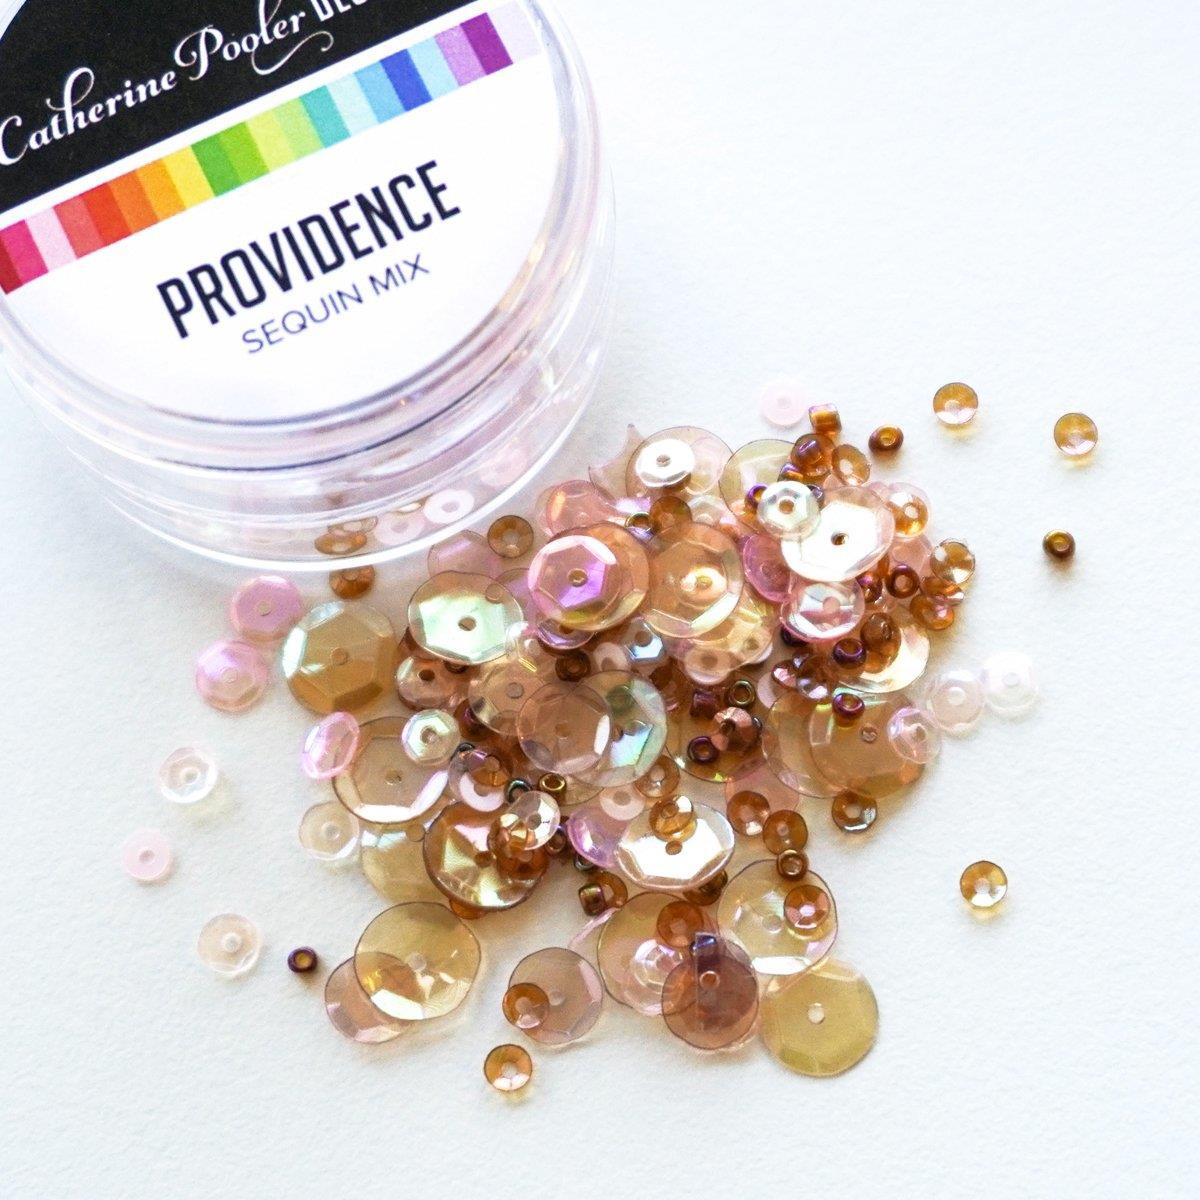 Providence, Catherine Pooler Sequins -